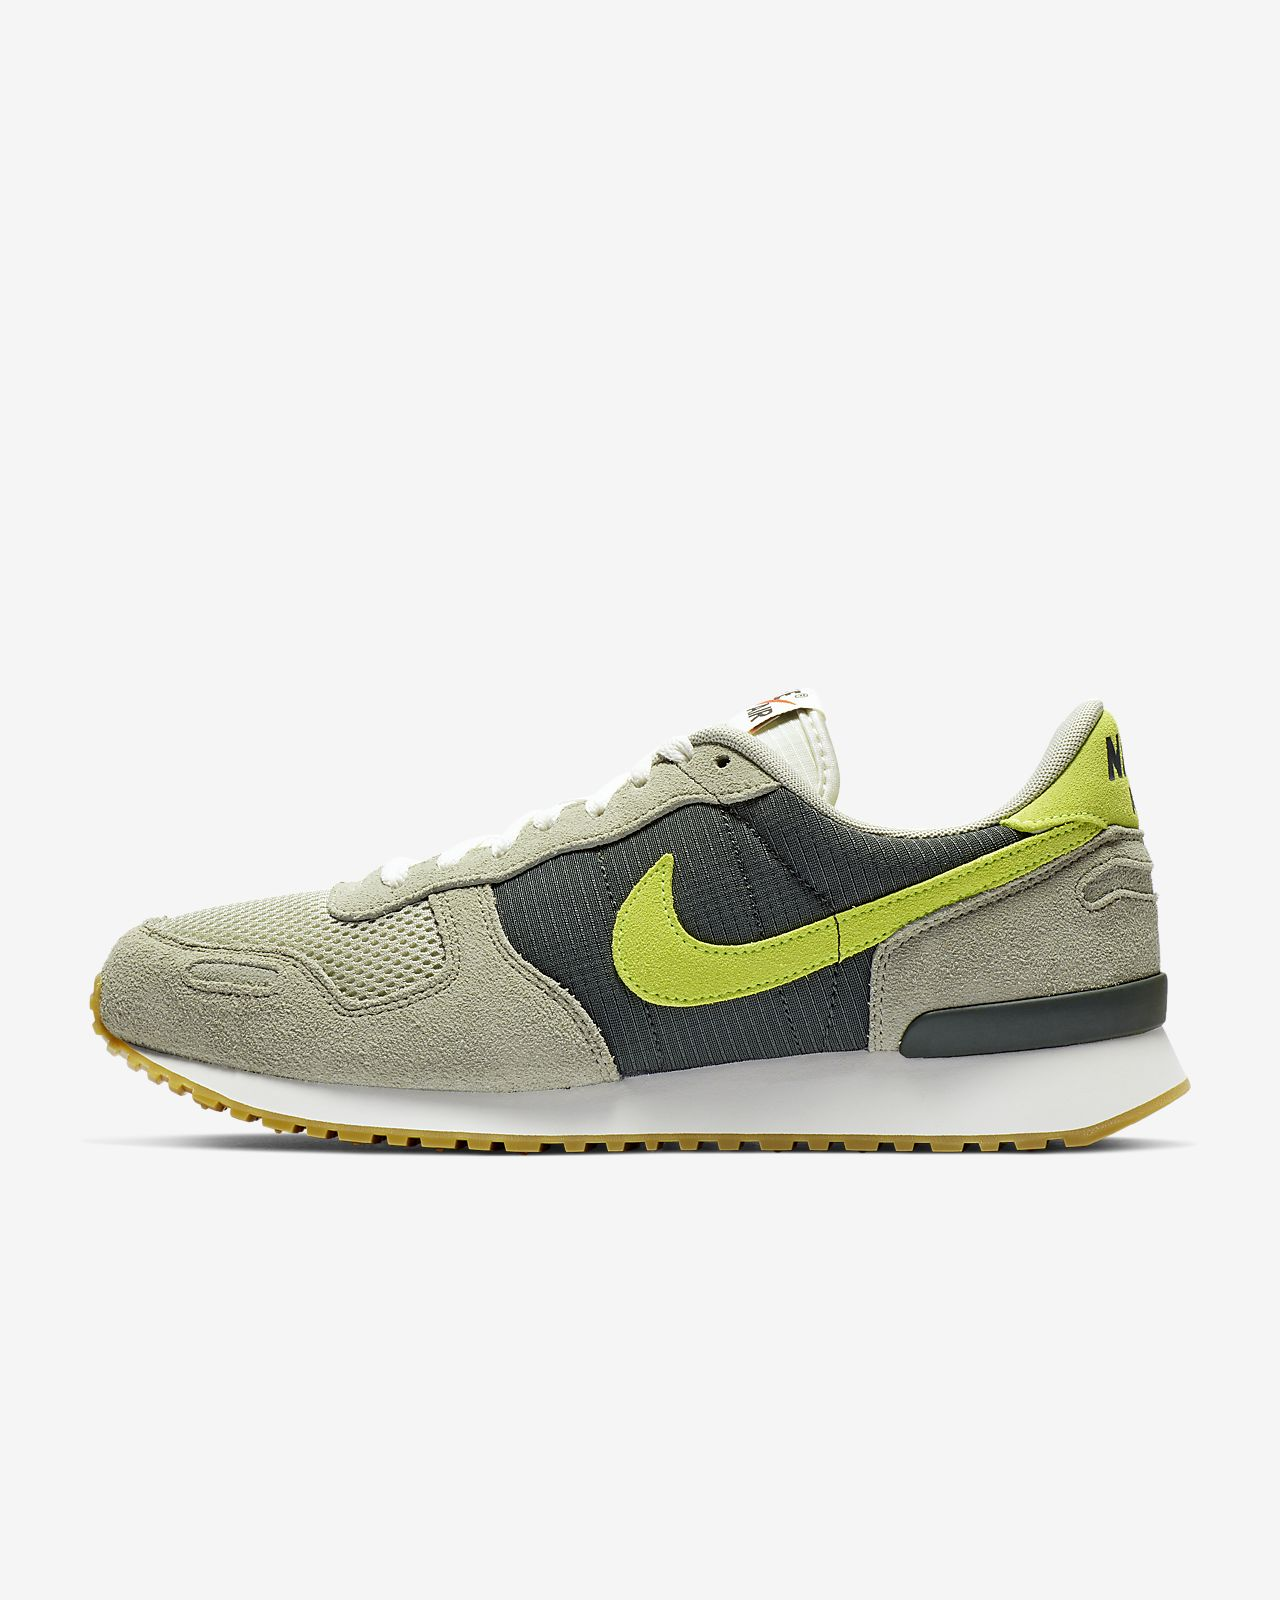 quality design 97fdc bb7d3 Low Resolution Nike Air Vortex Herenschoen Nike Air Vortex Herenschoen